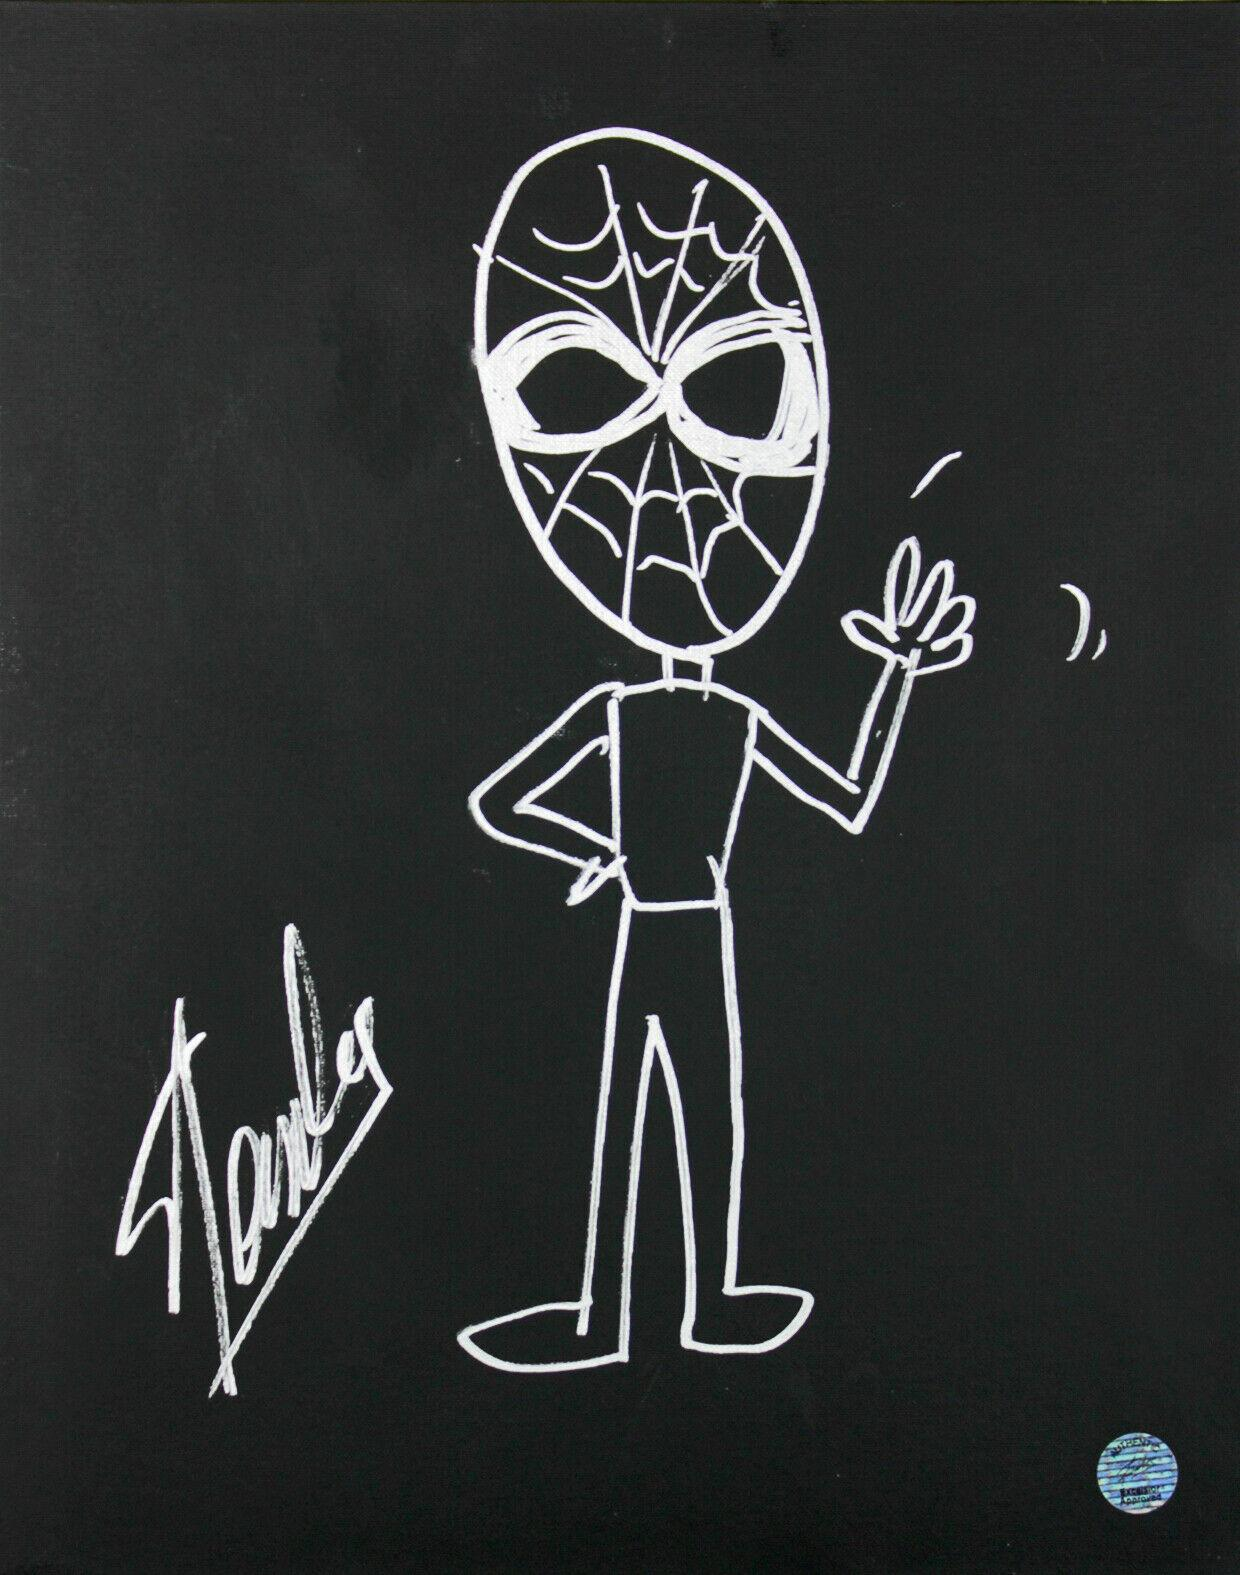 stan lee signed 16x20 canvas w spiderman sketch psadna